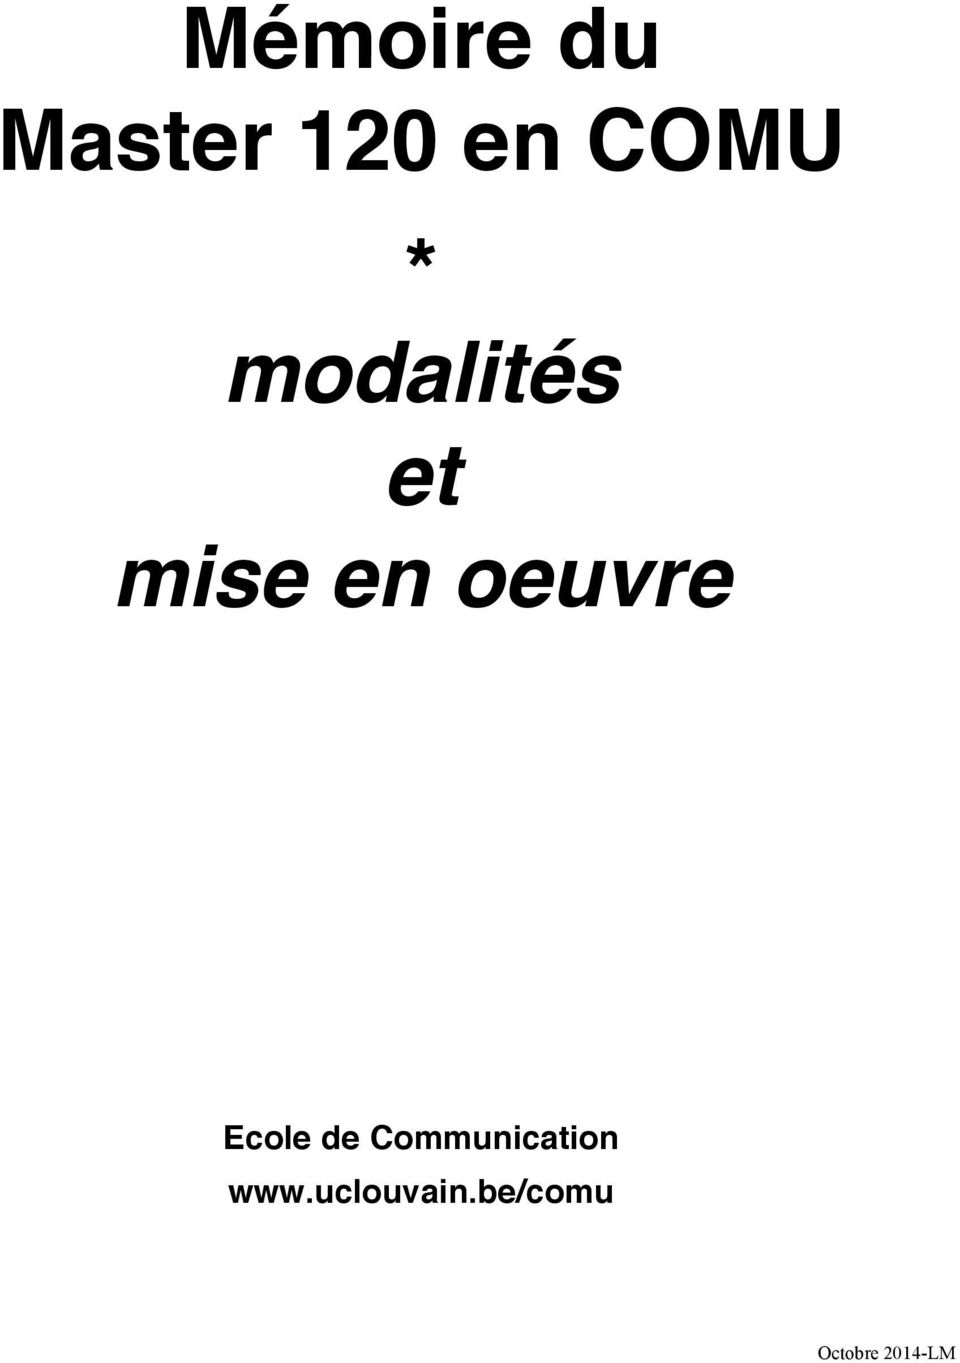 Ecole de Communication www.